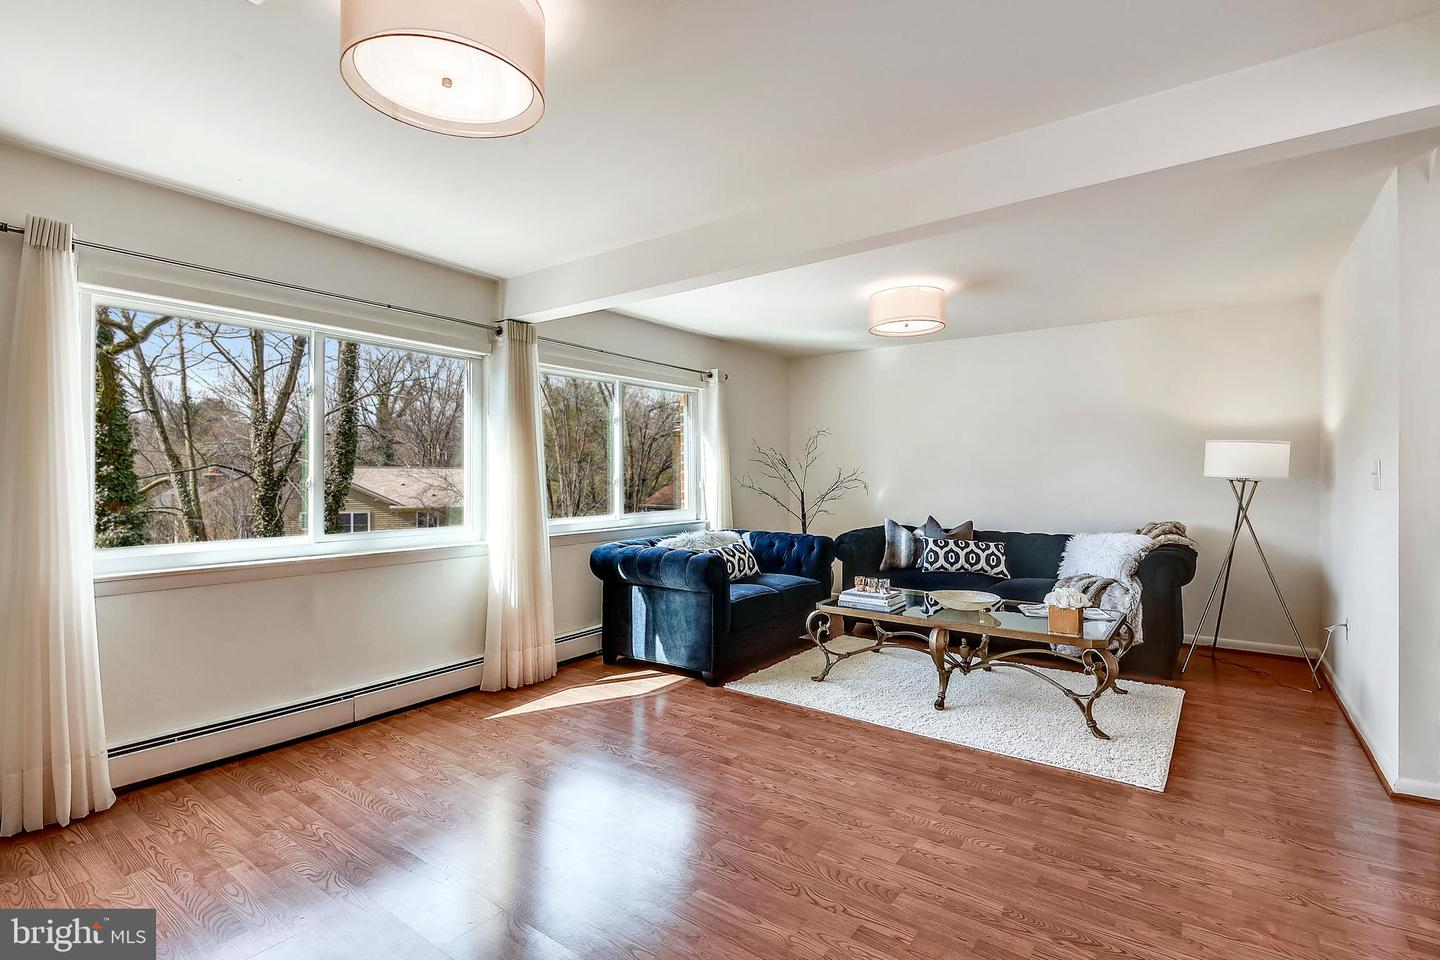 Additional photo for property listing at 1655 East Ave 1655 East Ave Mclean, Virginia 22101 United States